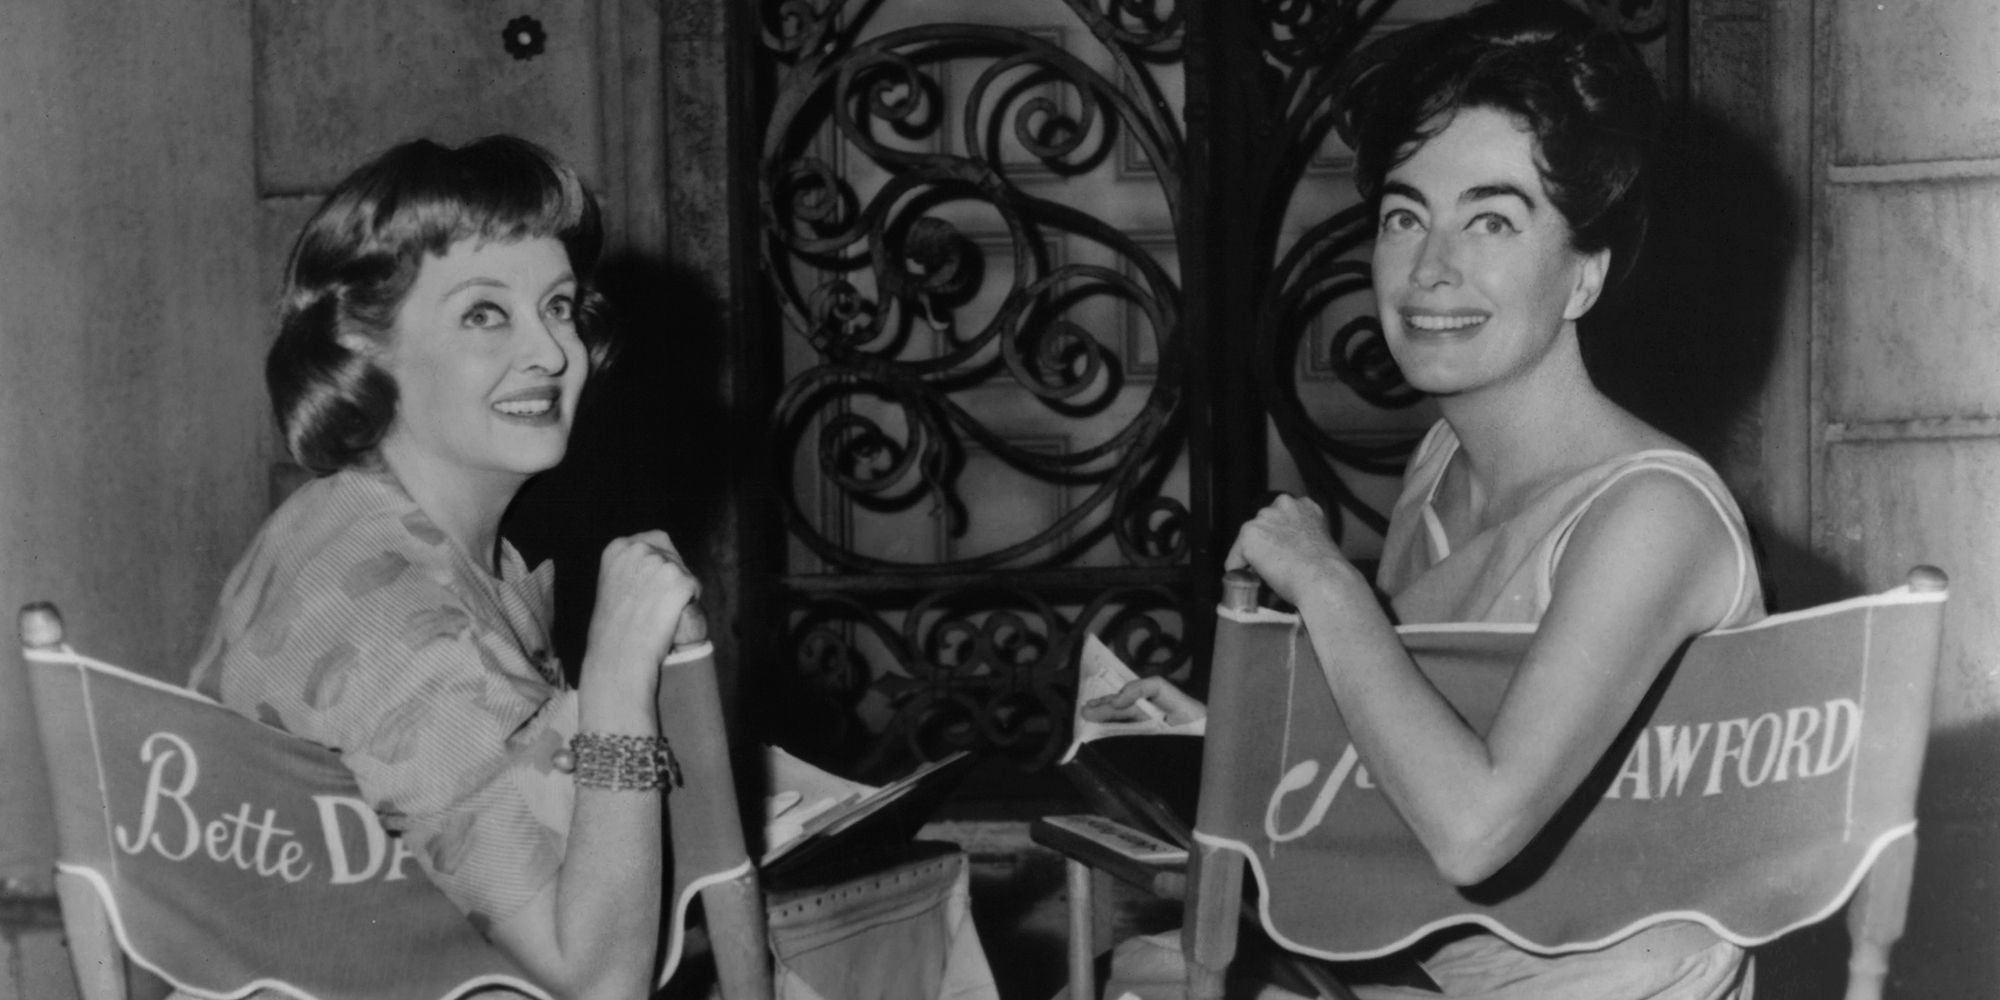 Joan Crawford and Betty Davis are Connected not Only By Famous Feud But by Secrets and Personal Tragedies Too!